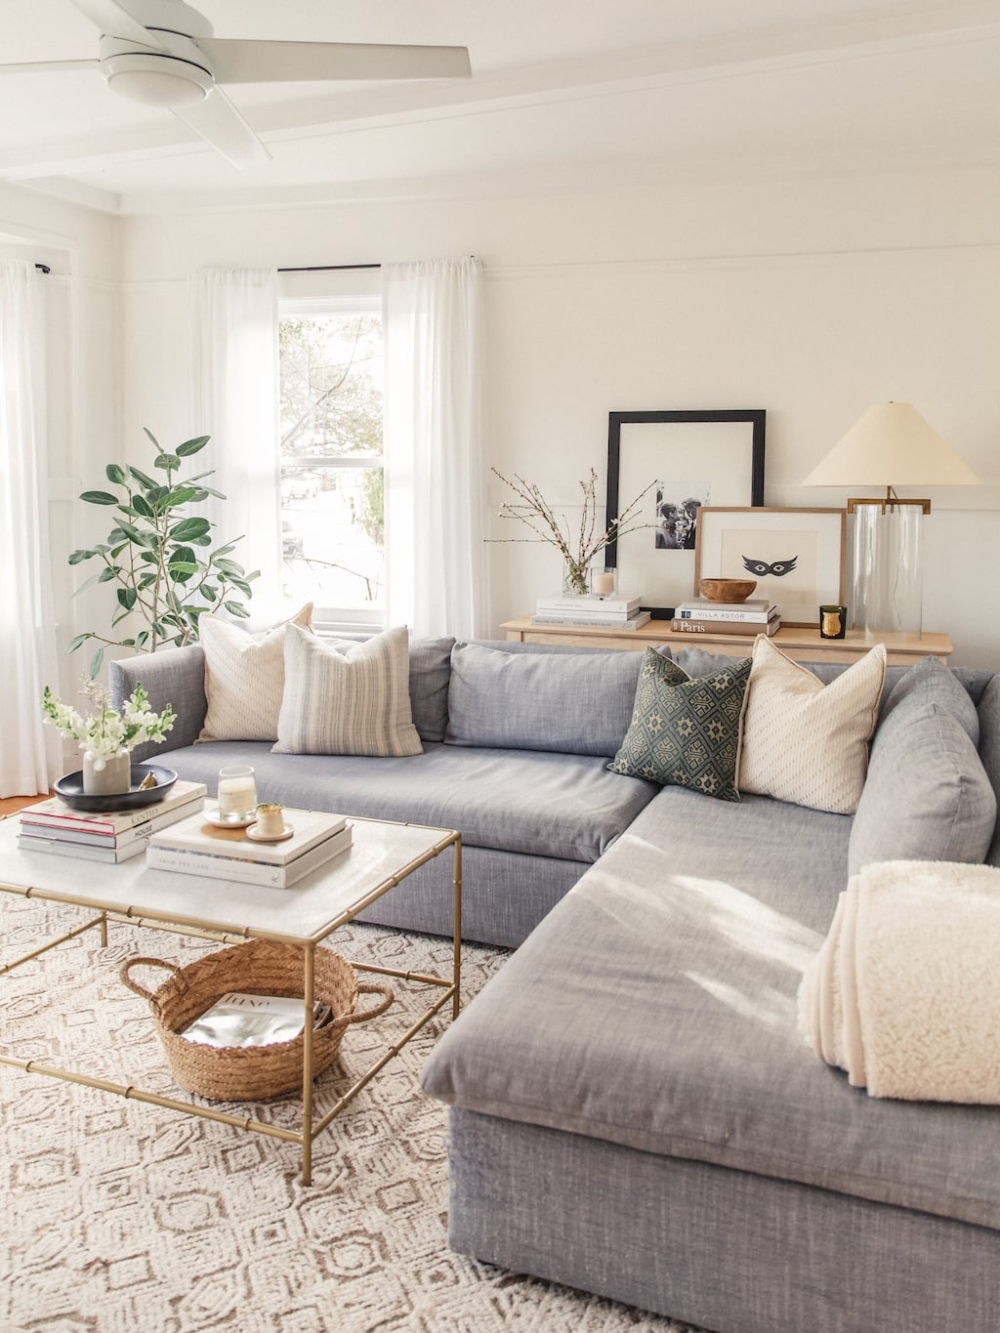 Home Decorating Trends 2020 24 Popular Interior Decor Ideas In 2020 Living Room Color Living Room Paint Interior Design Living Room #off #white #living #room #set